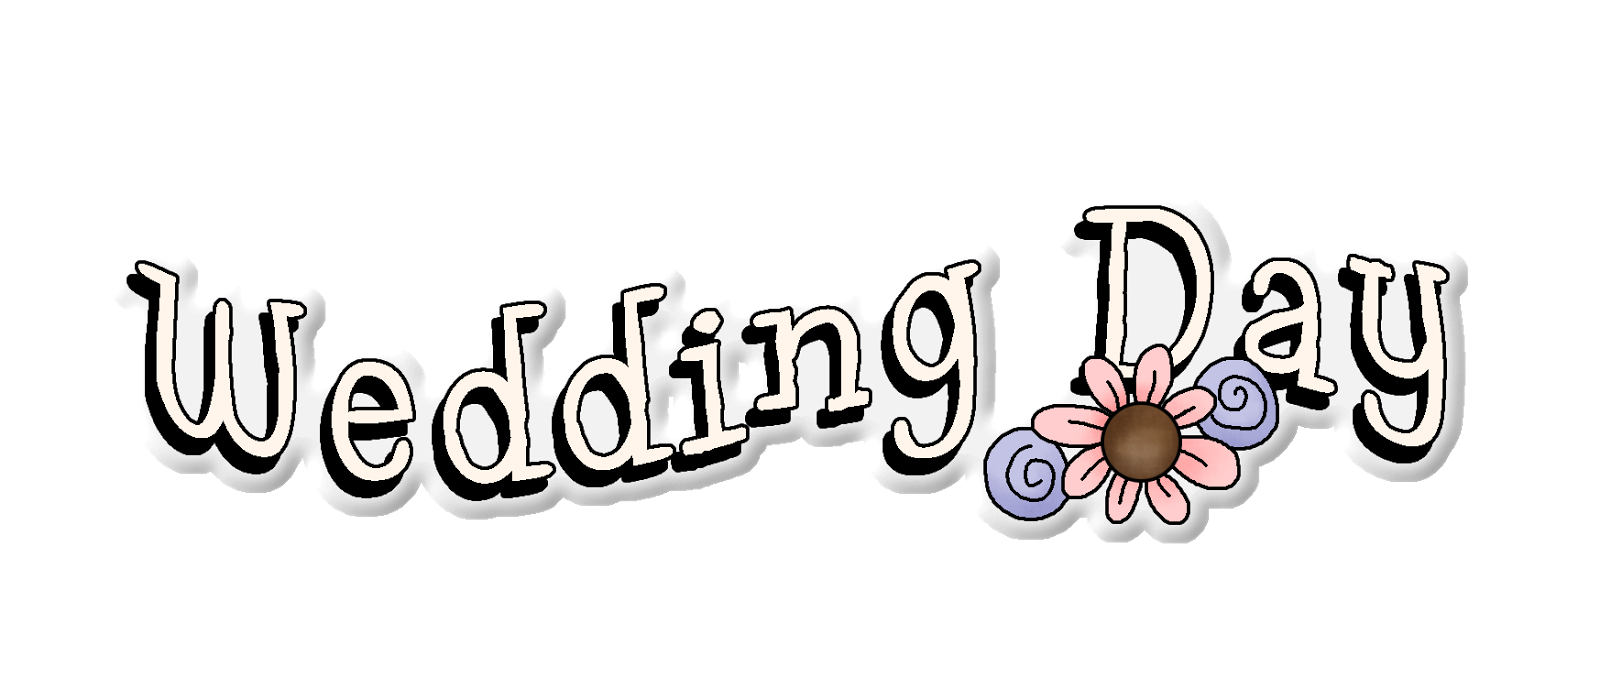 Wedding day png new. Hands clipart marriage